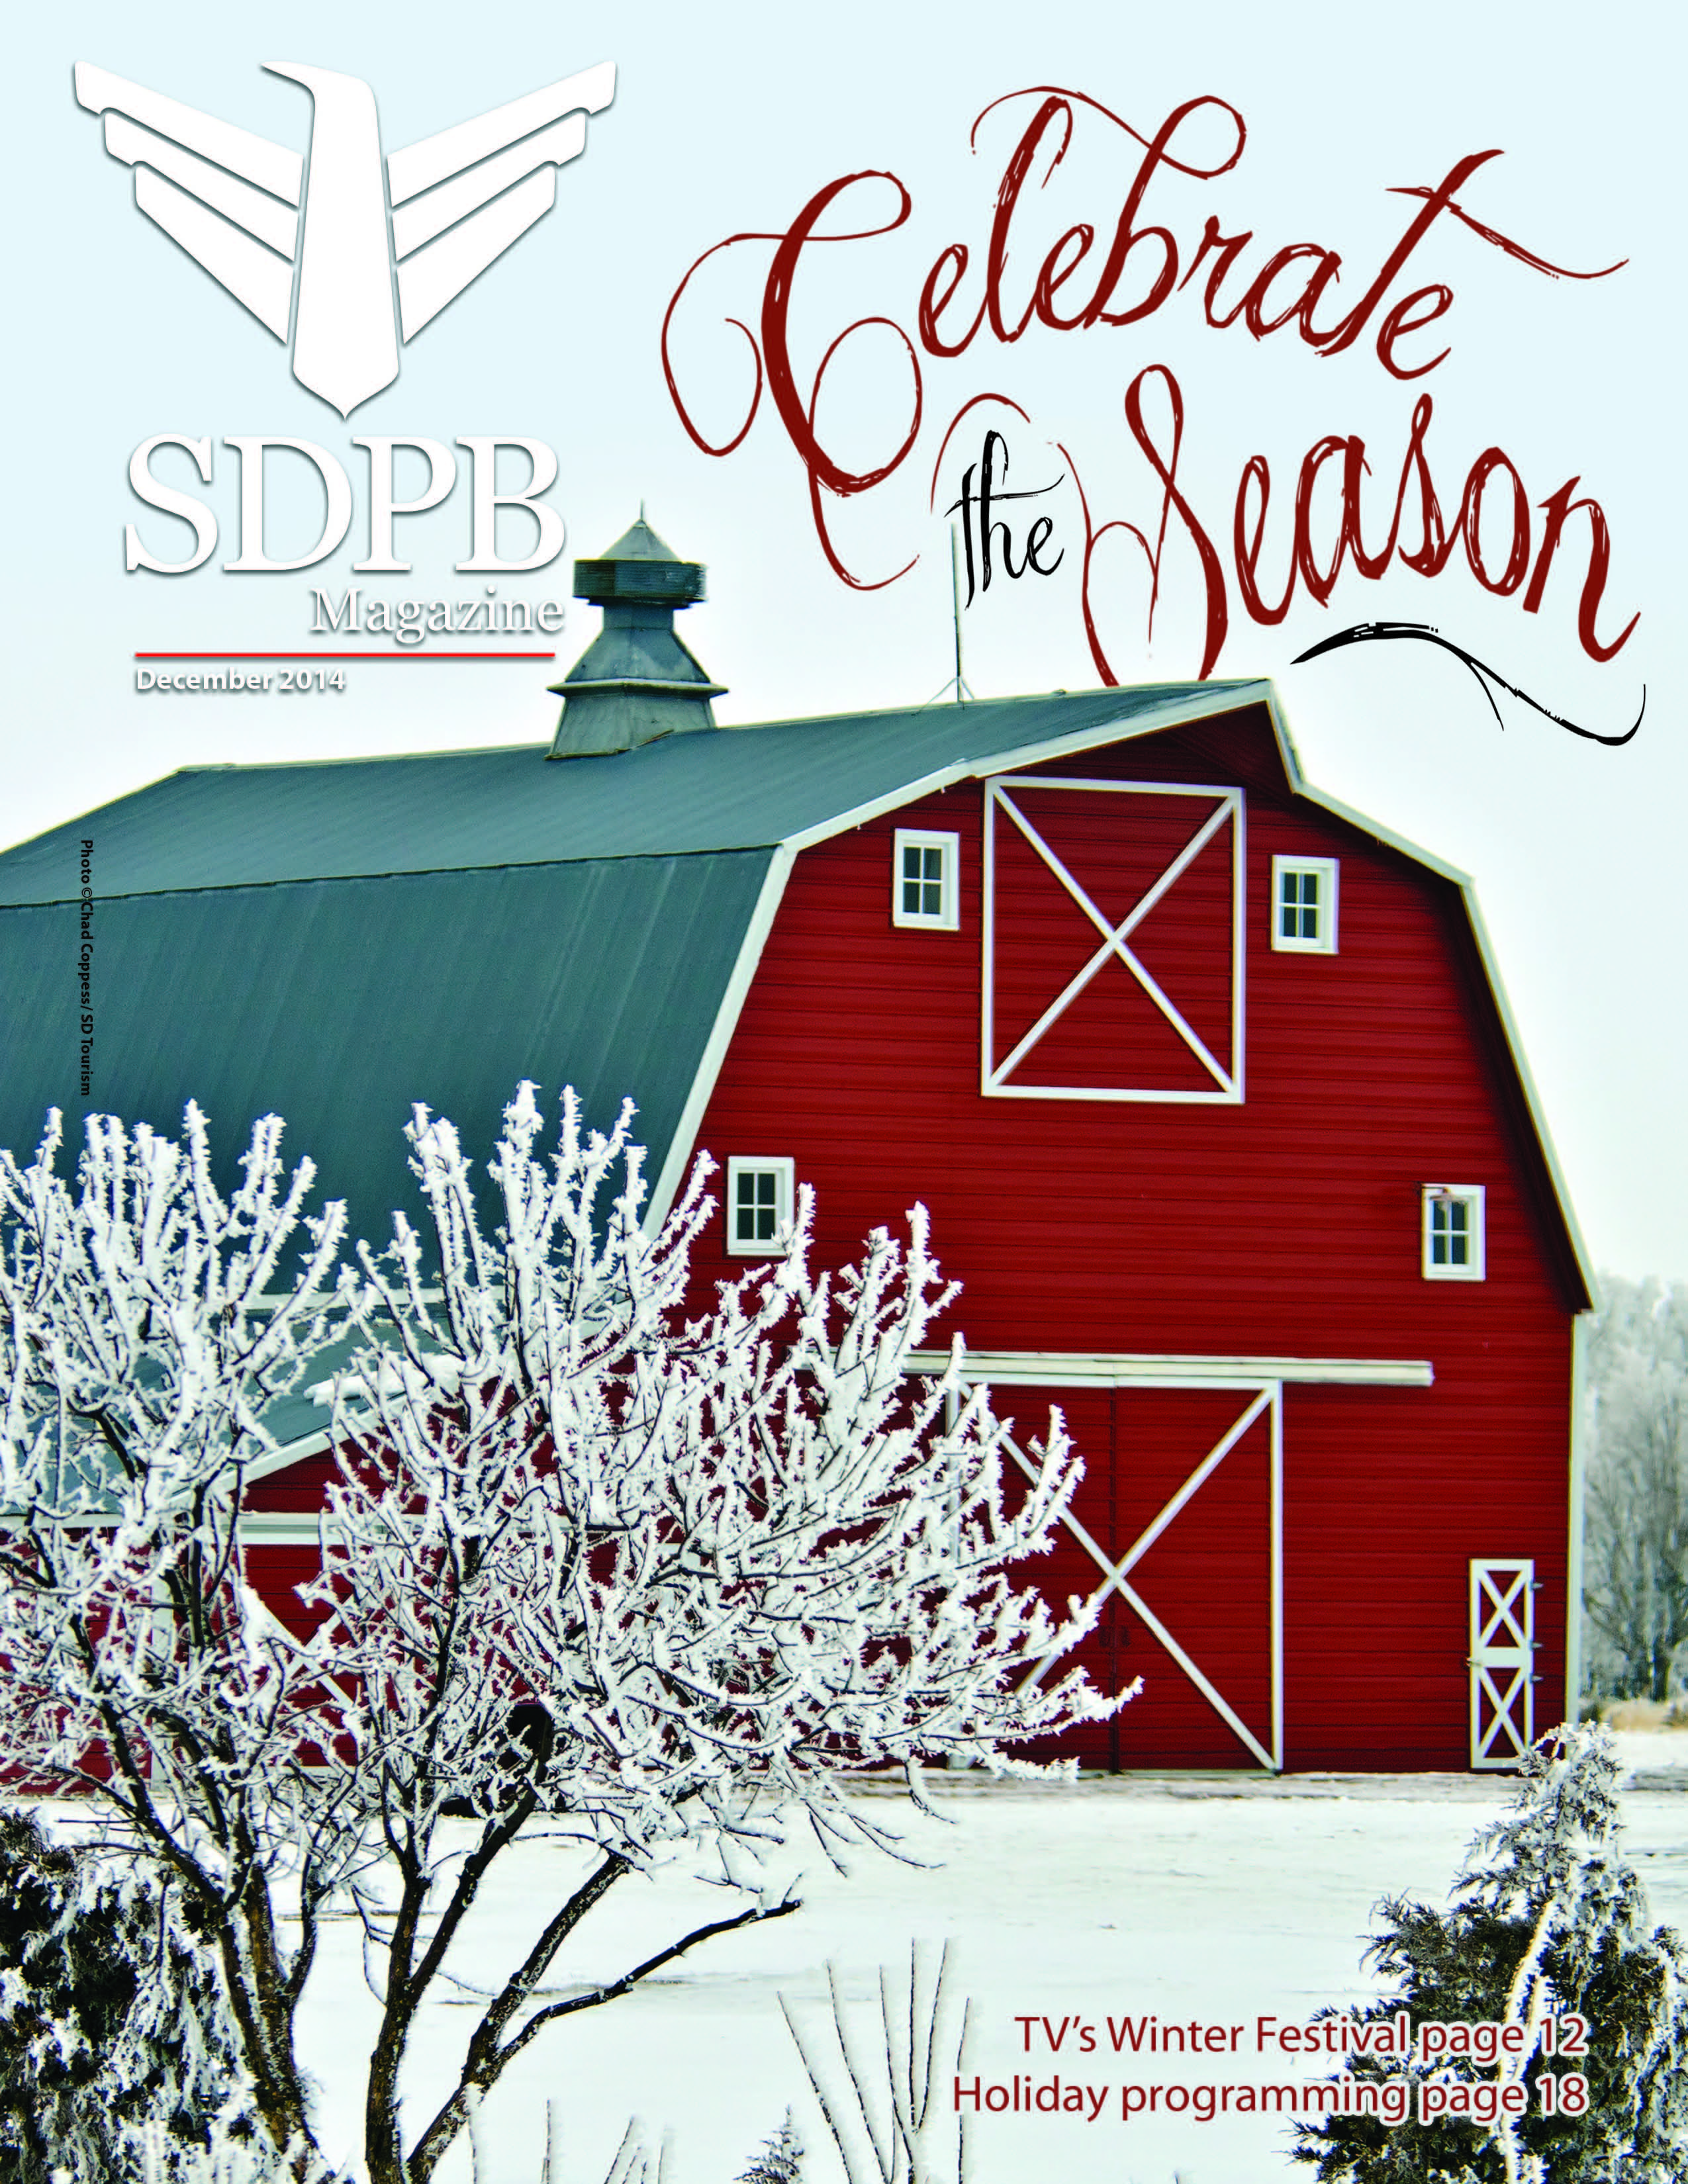 sdpb magazine december cover image